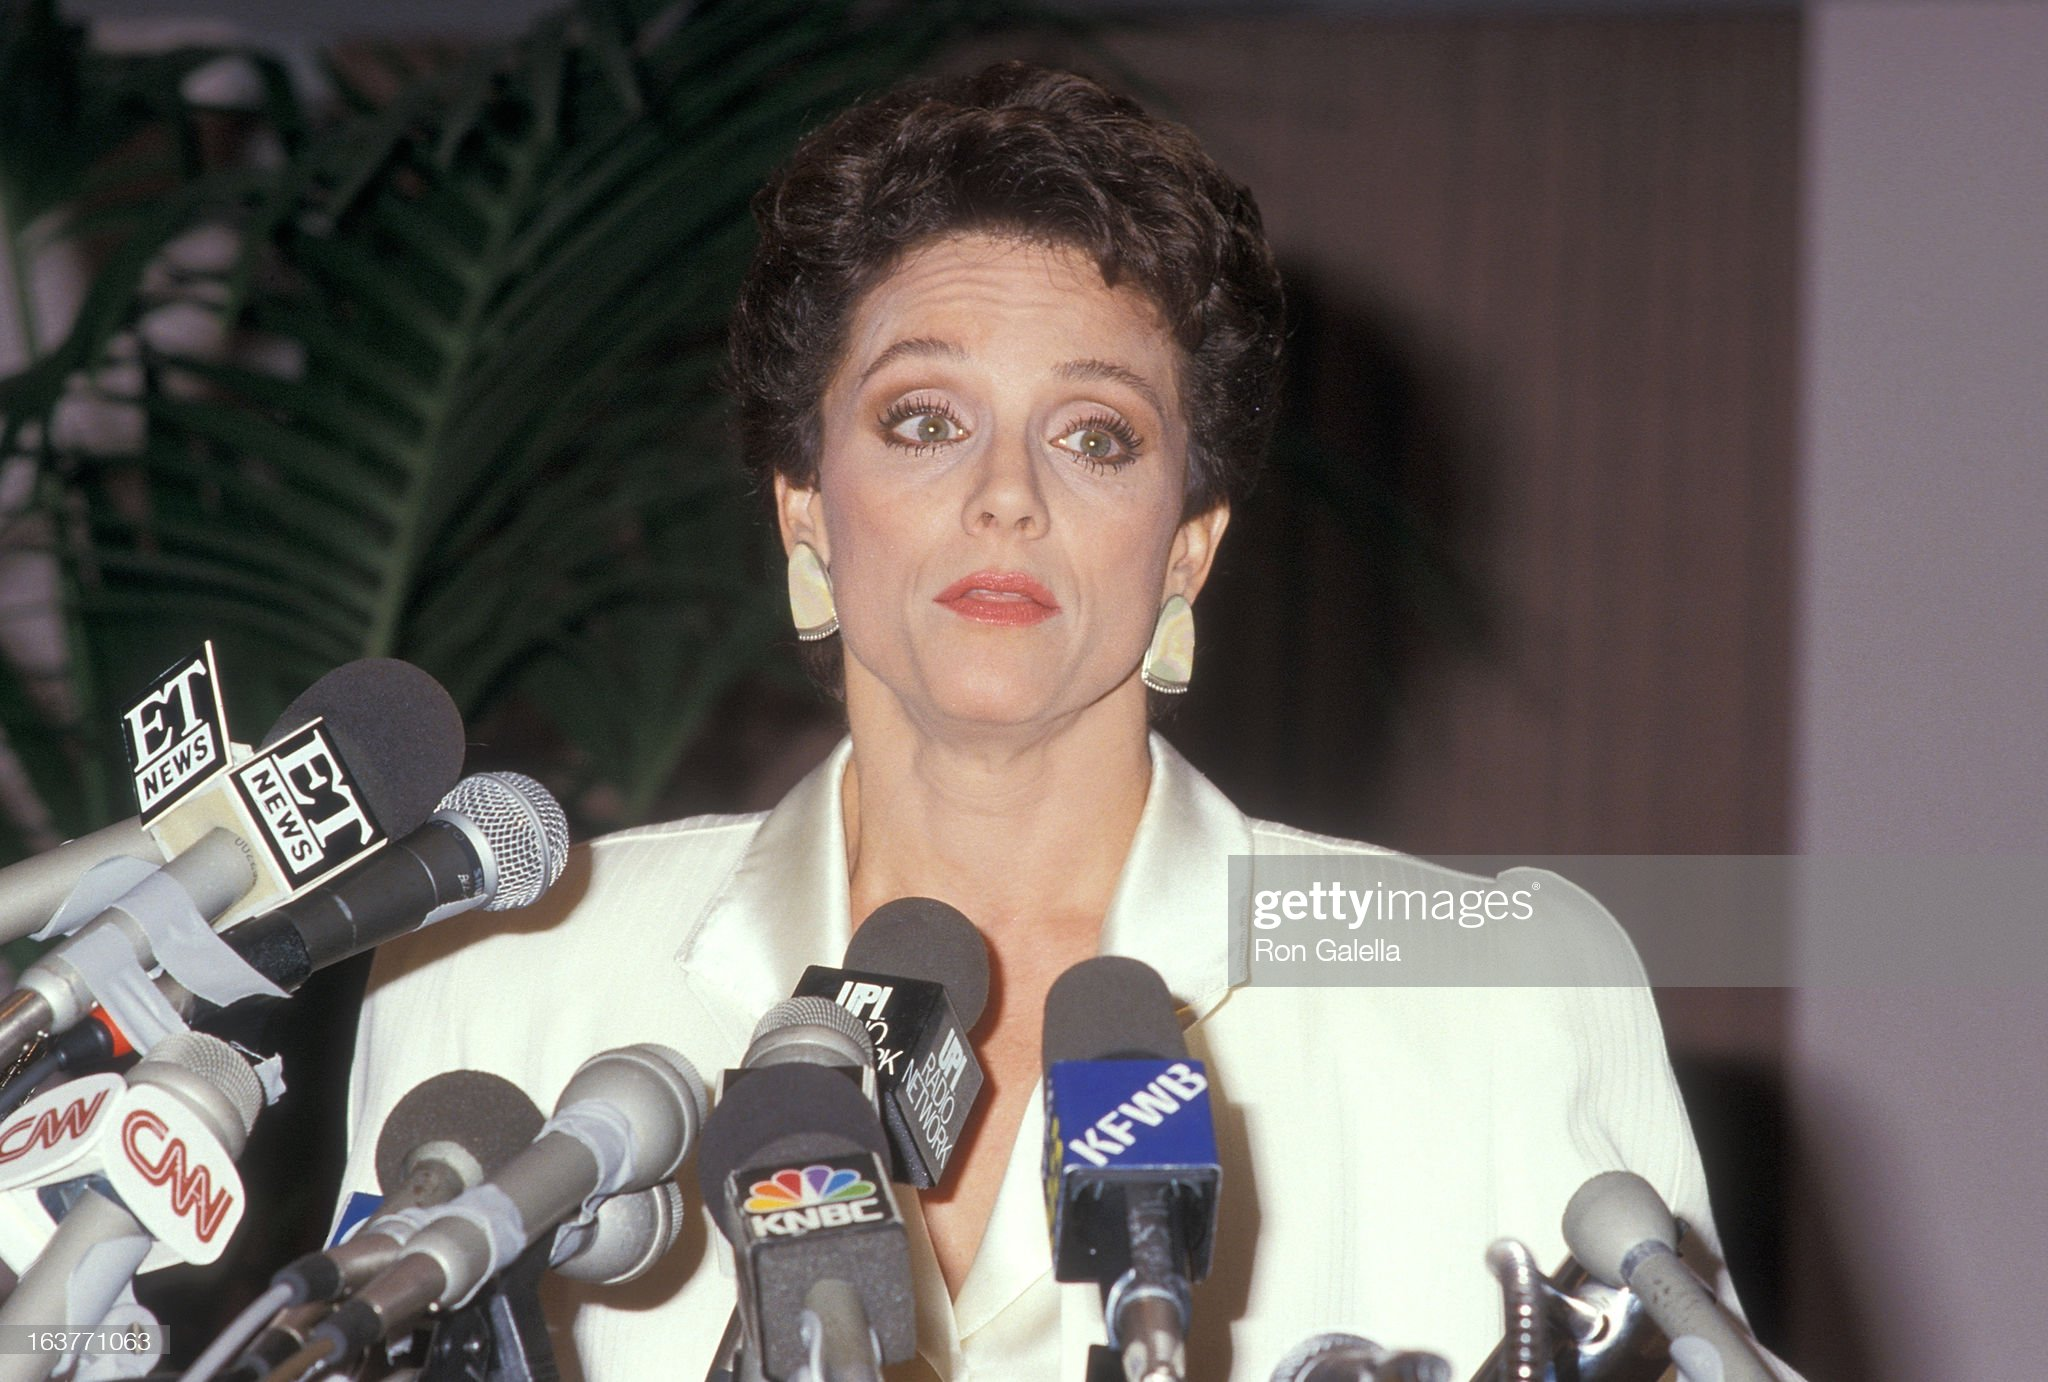 actress-valerie-harper-addresses-the-press-to-speak-about-being-fired-picture-id163771063